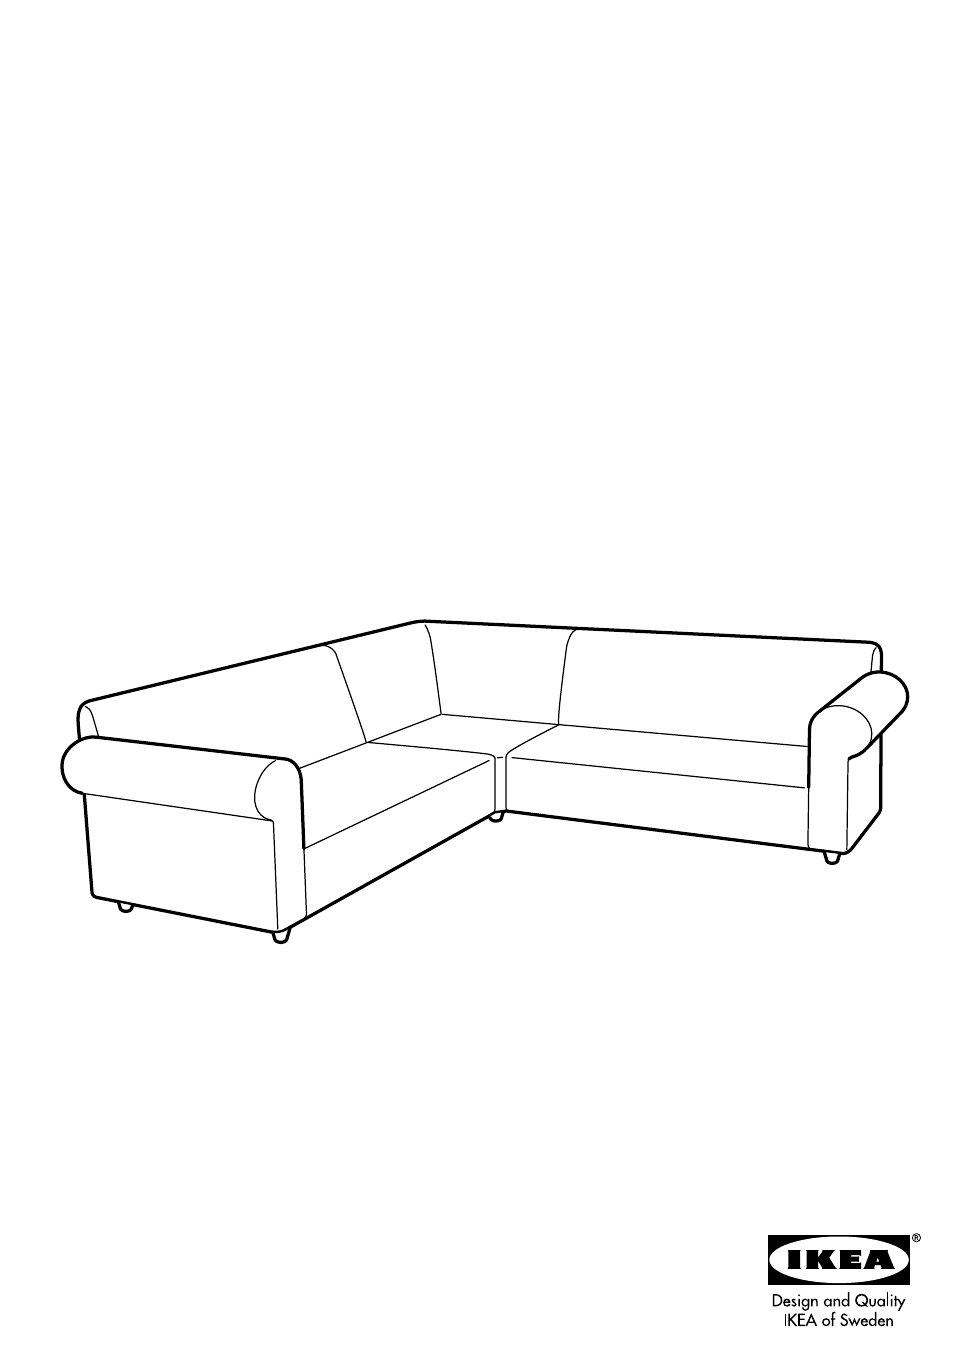 Ikea Kivik Chaise Lounge Google Search: Kivik Sofa Assembly Instructions Pdf